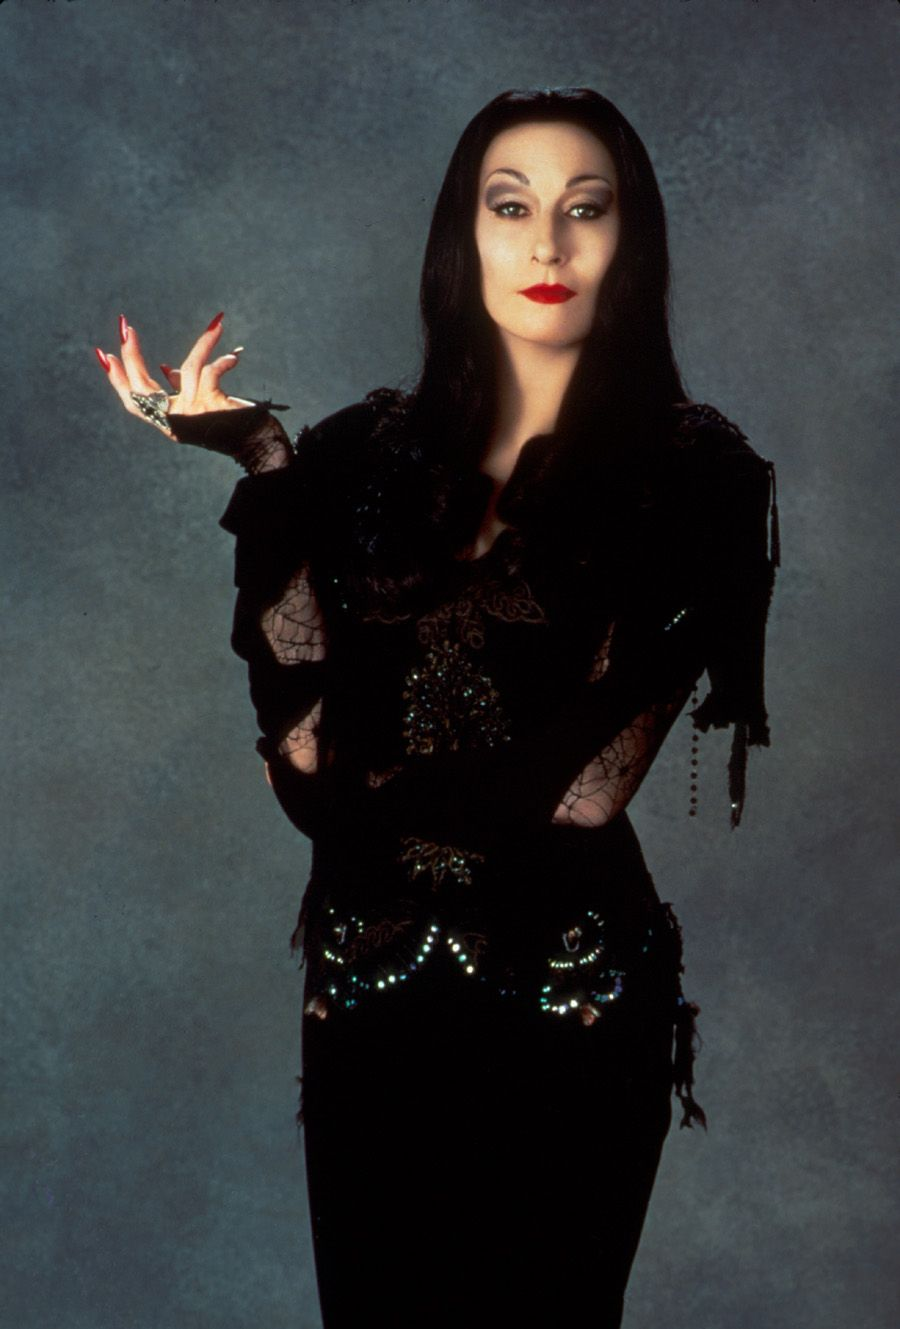 Anjelica Huston - Signed Adams Family Image #2 (8x10, 11x14, 16x20)